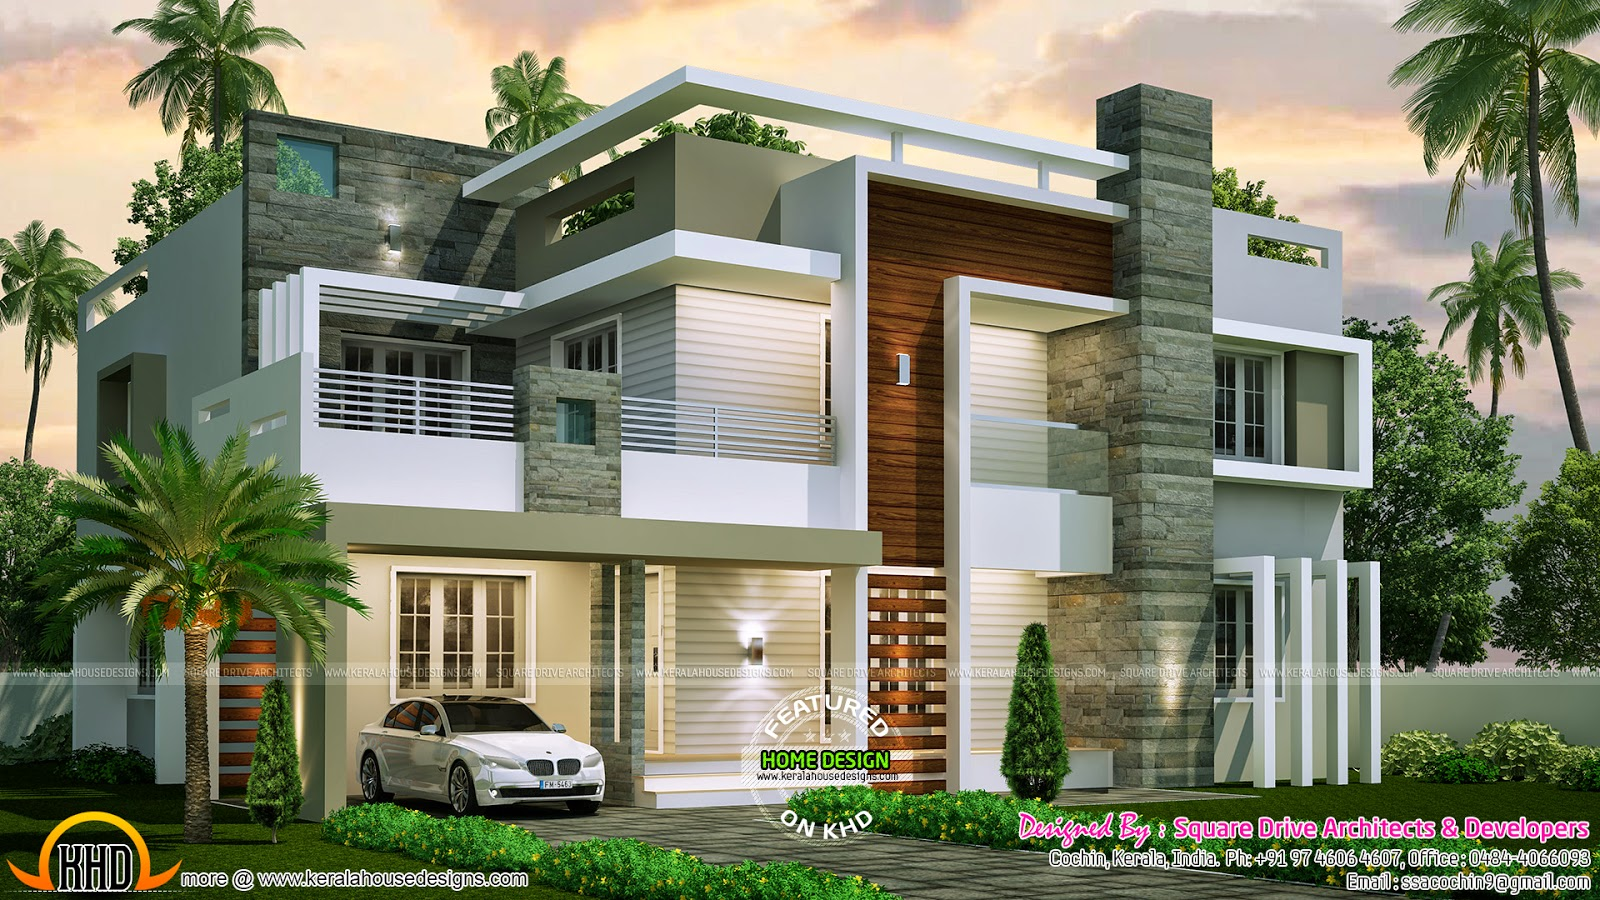 4 bedroom contemporary home design Kerala home design